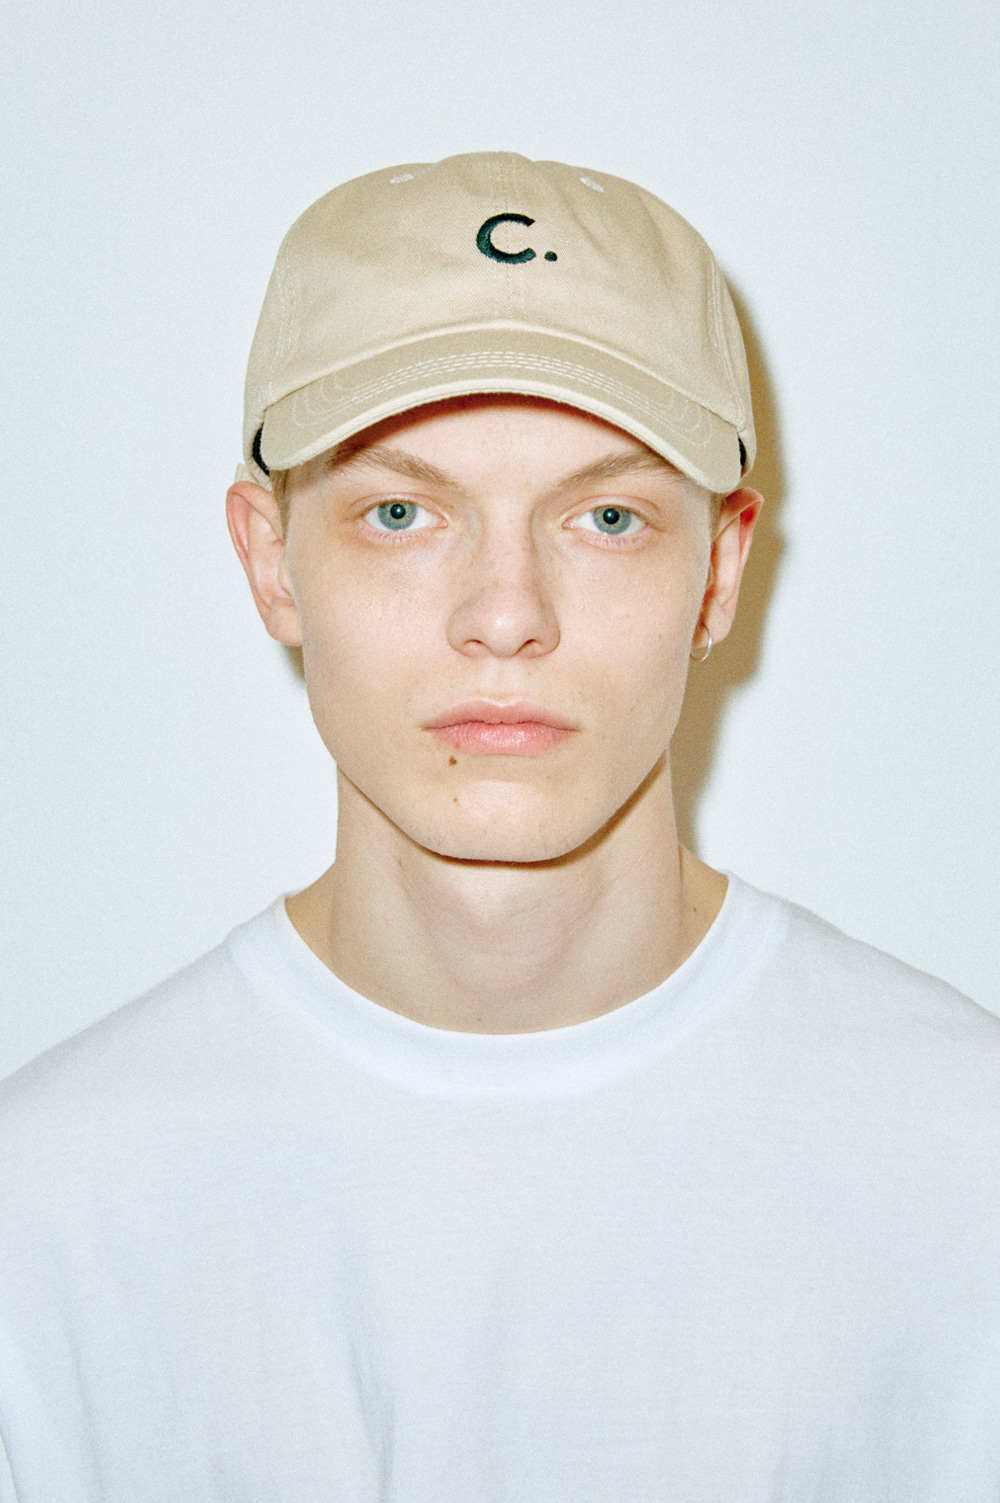 Basic Fit Ball Cap (Beige)